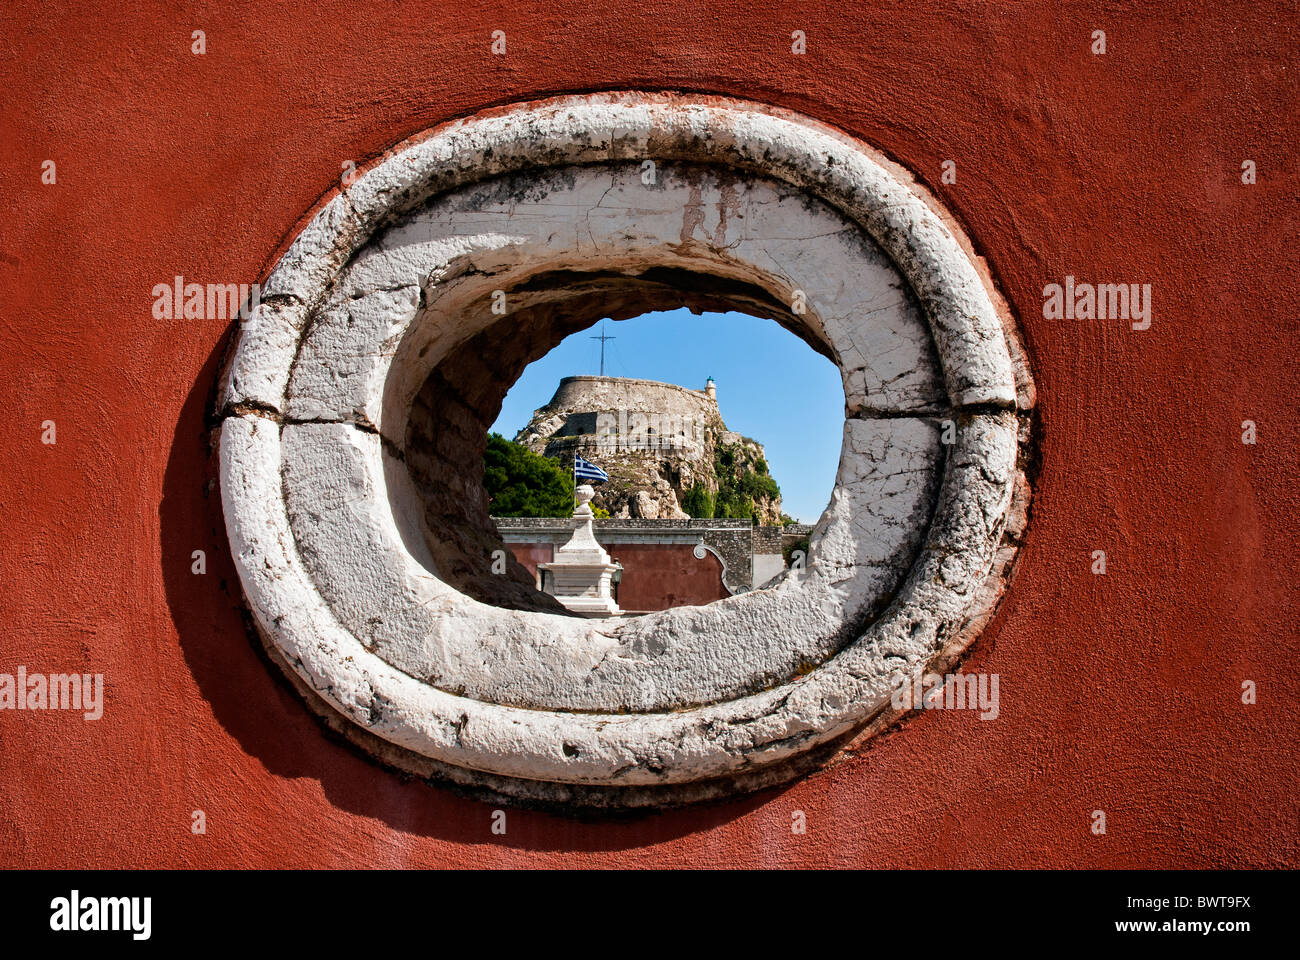 The Old Fortress in Corfu Town, Ionian Islands, Greece. - Stock Image